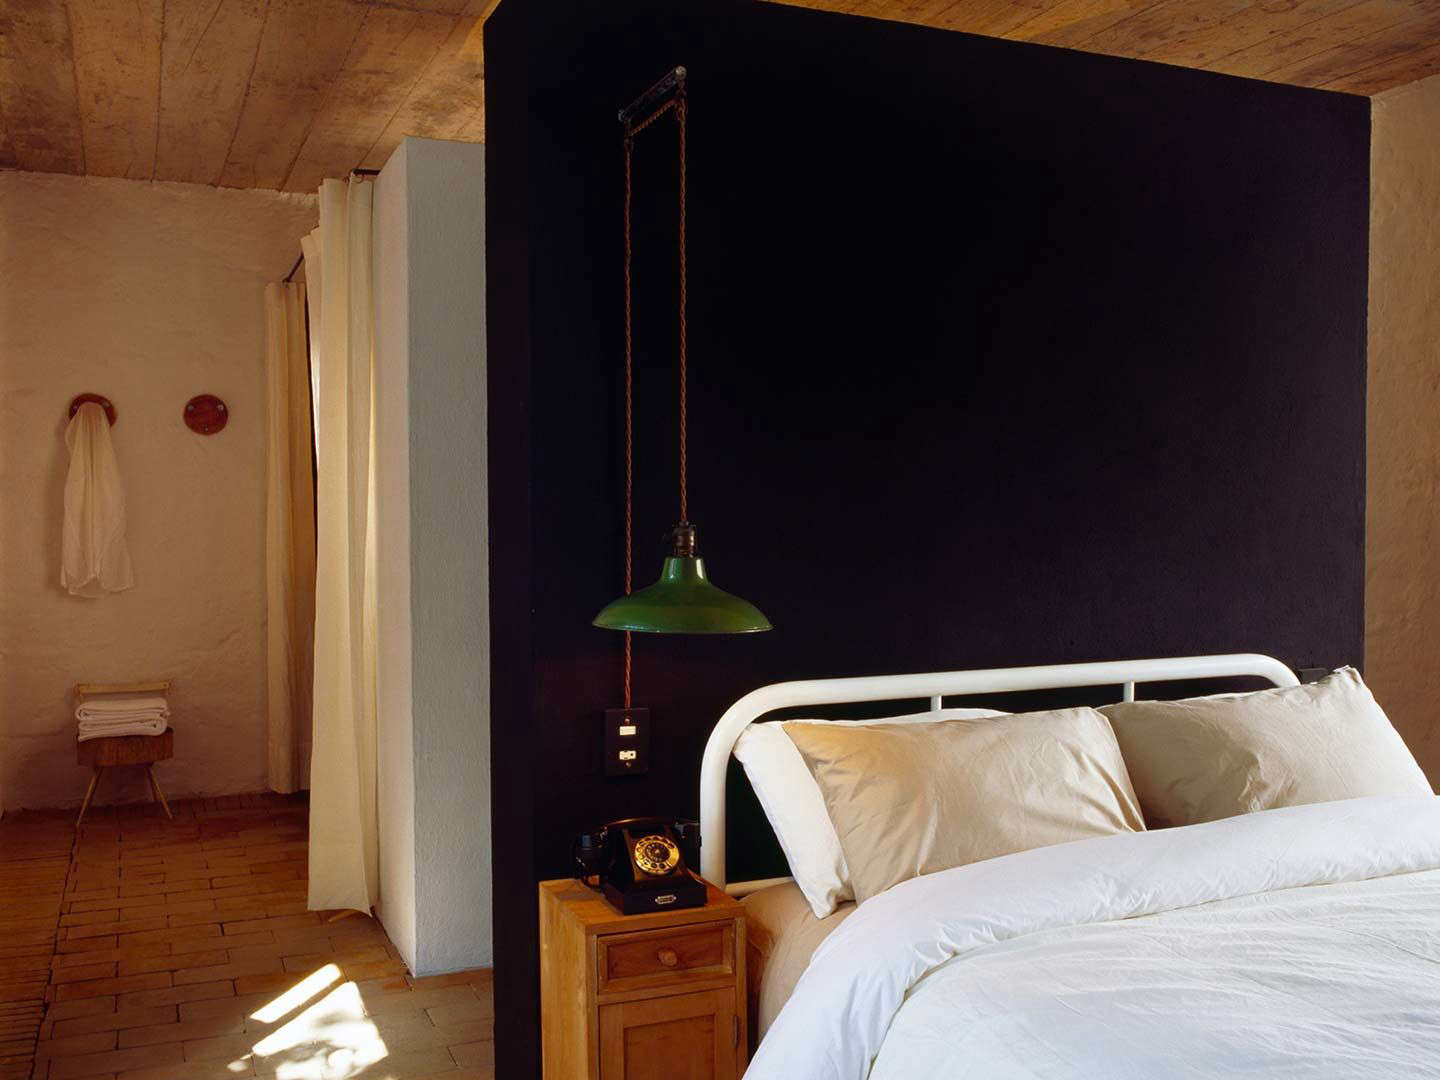 One of the 3 smaller bedrooms in the original farmhouse with a matte black wall and antique lighting.